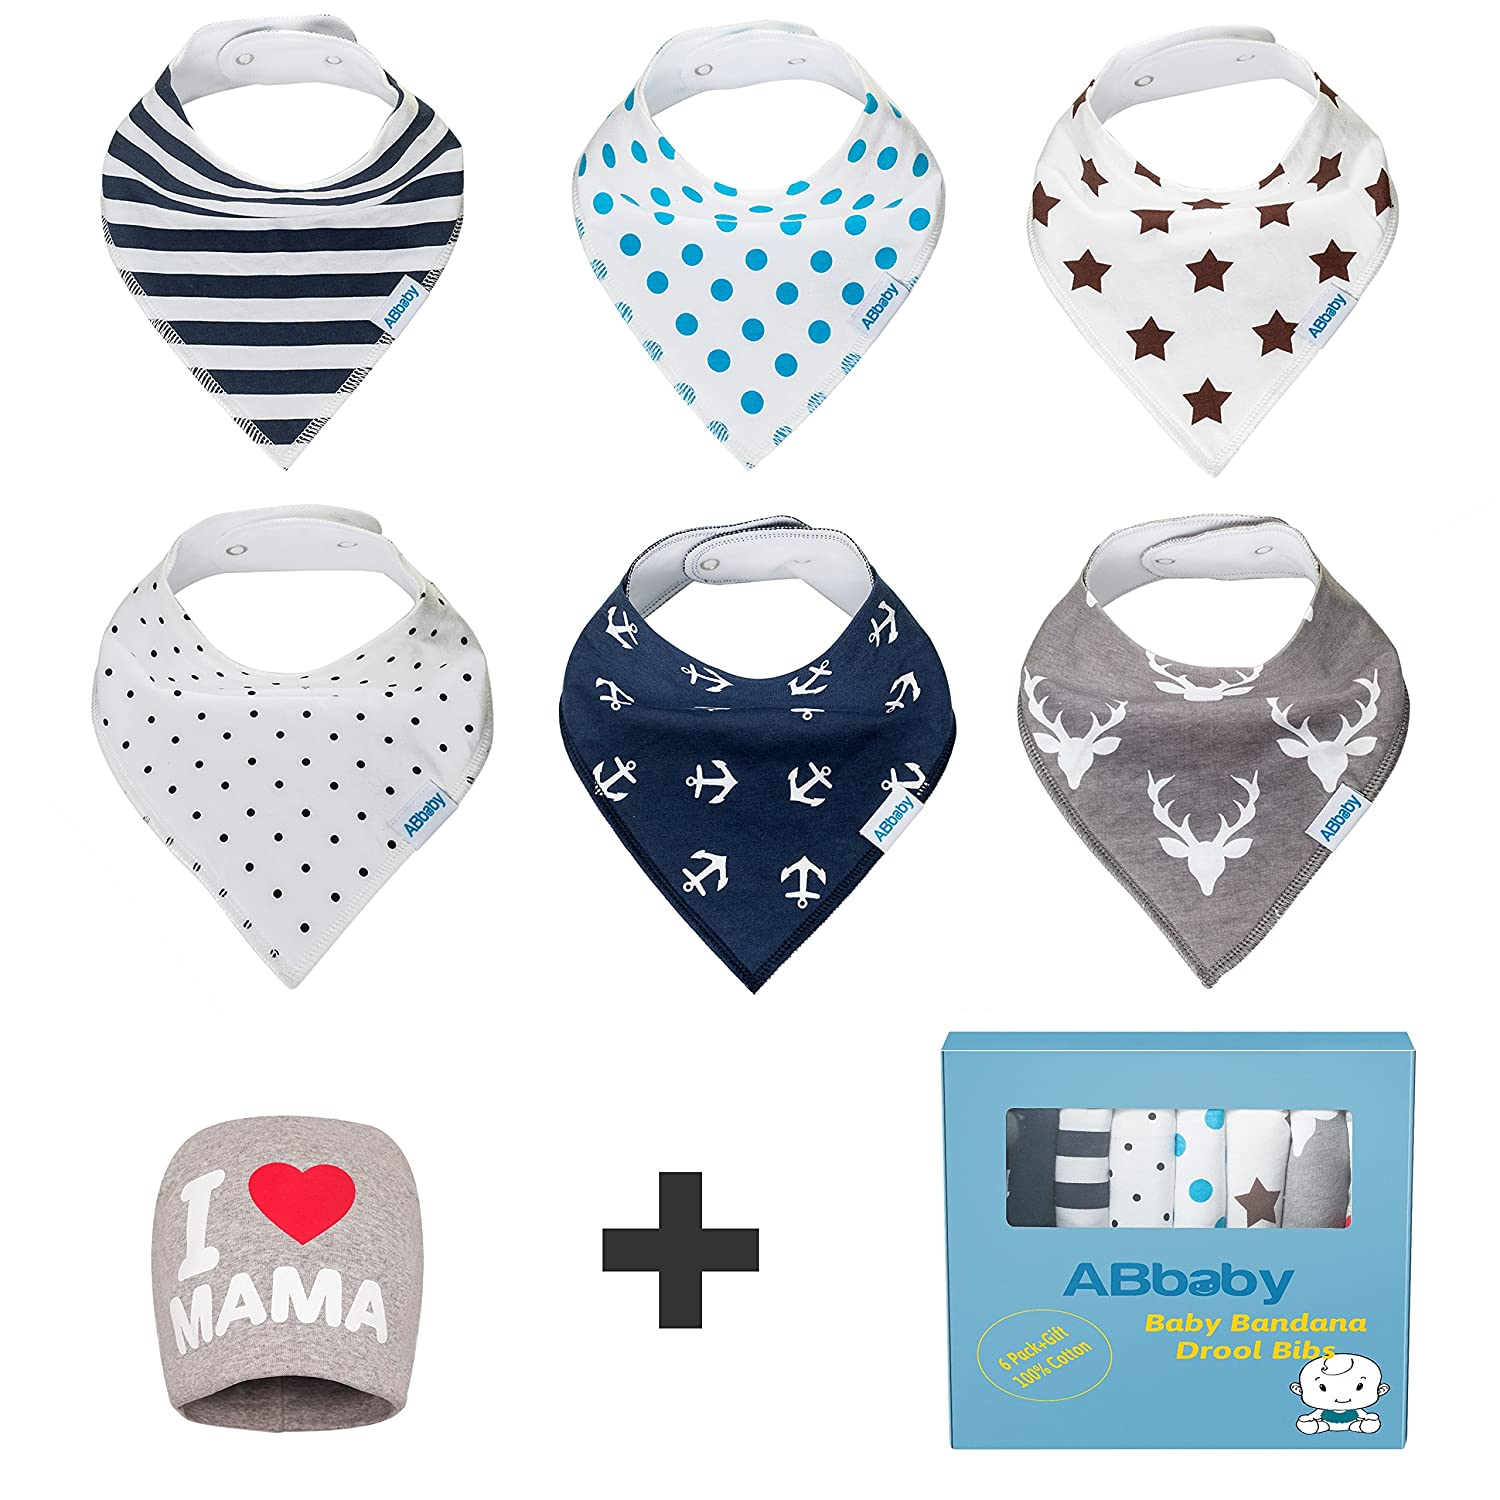 Bandana Baby Bibs For Boys And Girls With Snaps 6 Mom N Bab Long Pants Blue Polkadot Size 6t Pack Gift Set Feeding Drooling Teething Plus Free I Love Mama Hat Best Shower